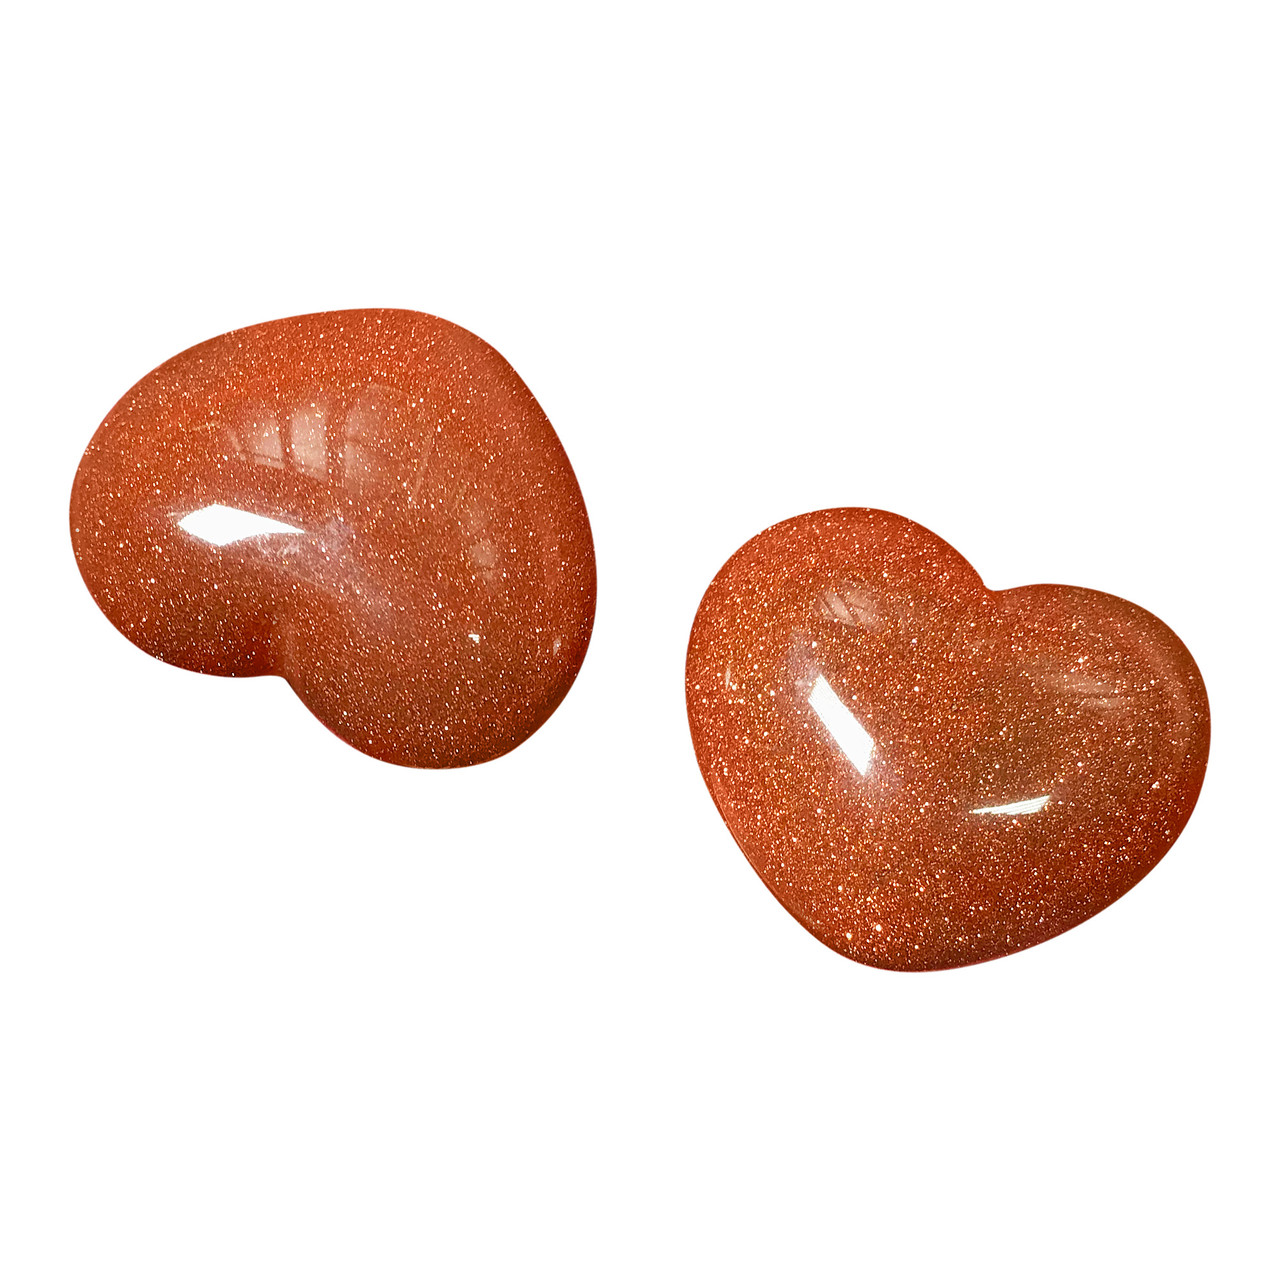 ONE Goldstone Collectible Heart Shape Palm Stone 1 x 1.5 Inch